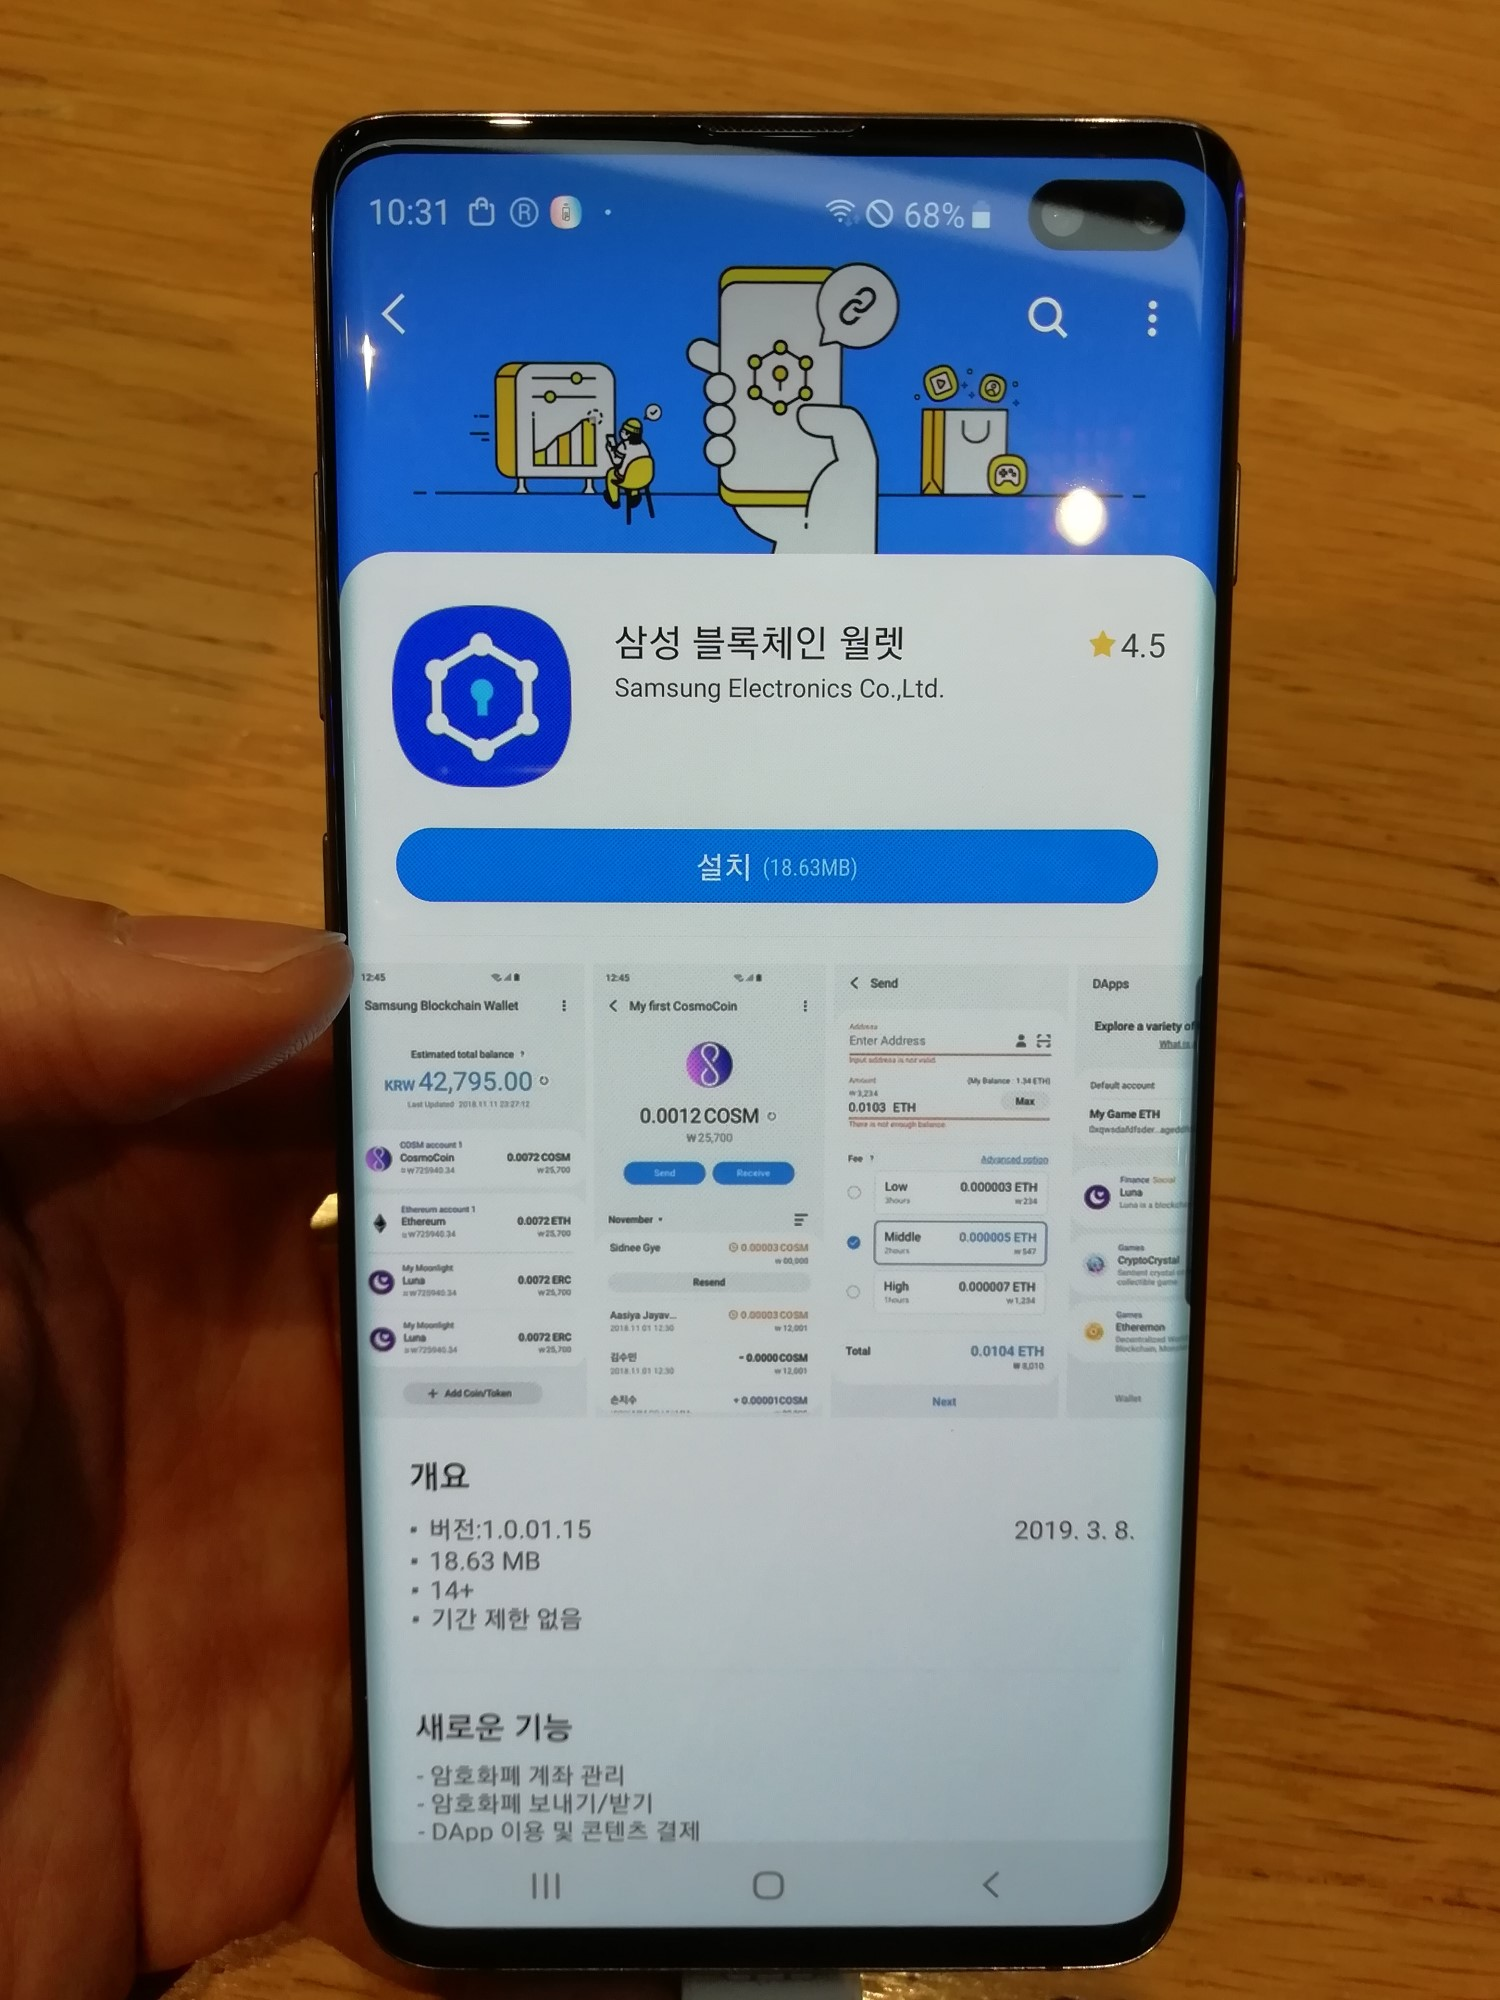 Samsung Unveils Cryptocurrency Wallet, Dapps for Galaxy S10 Phone